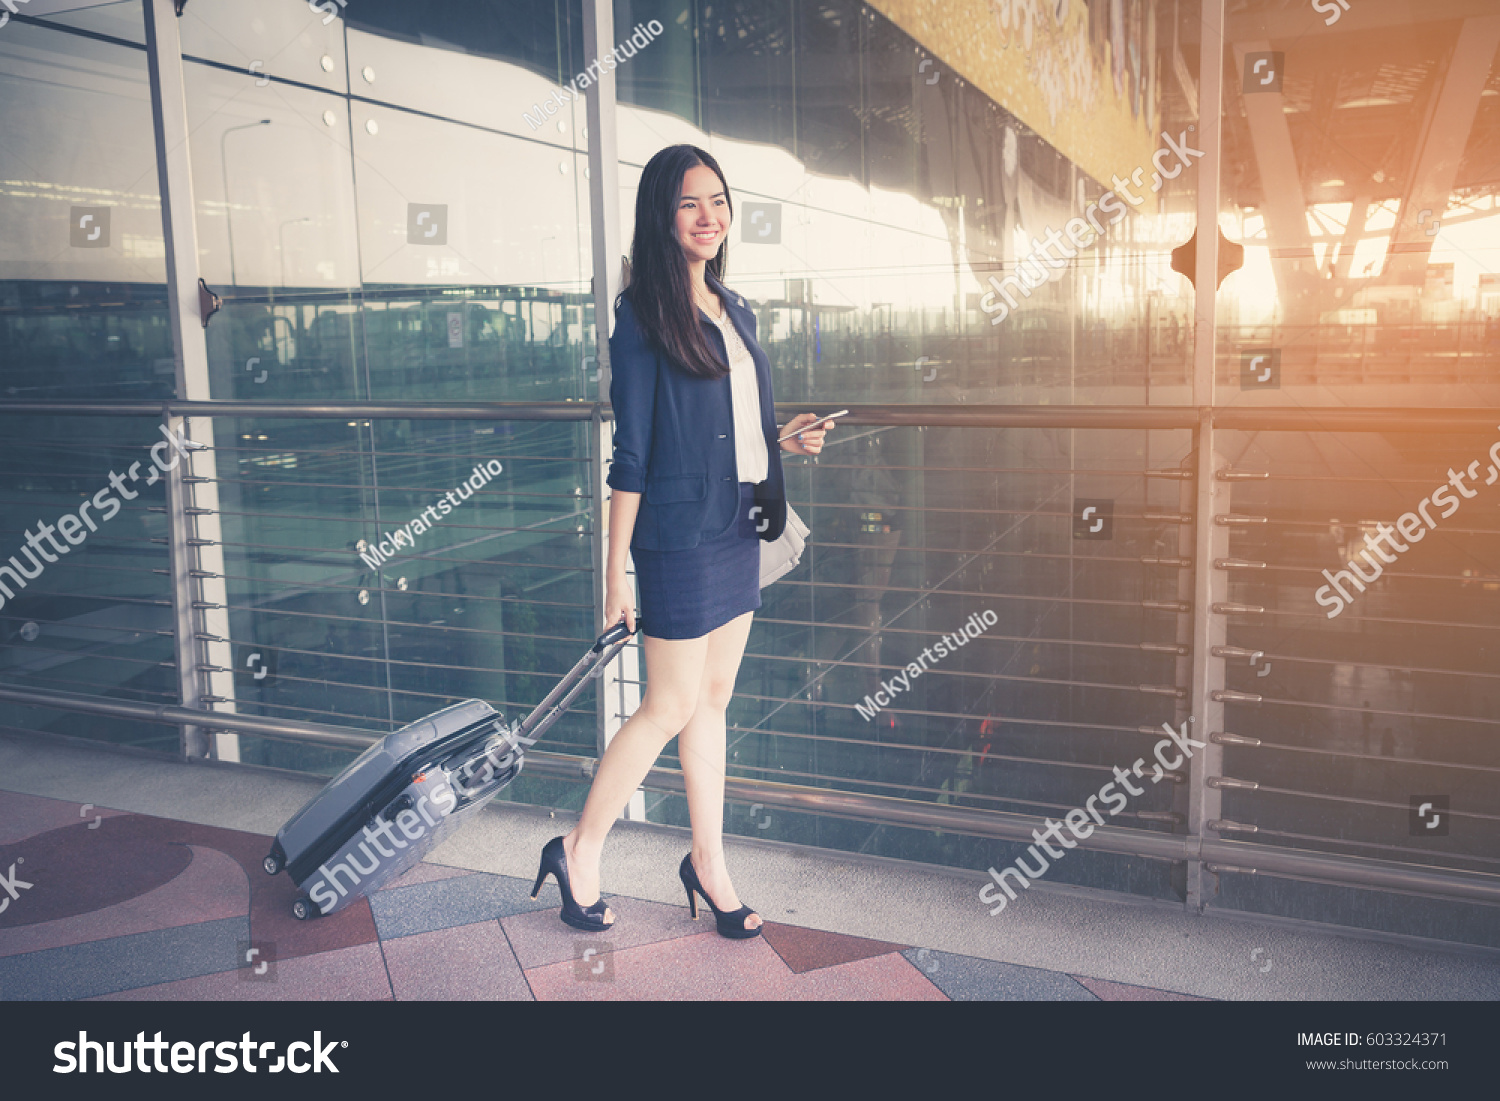 asia businesswoman on commute transit talking stock photo 603324371 shutterstock. Black Bedroom Furniture Sets. Home Design Ideas